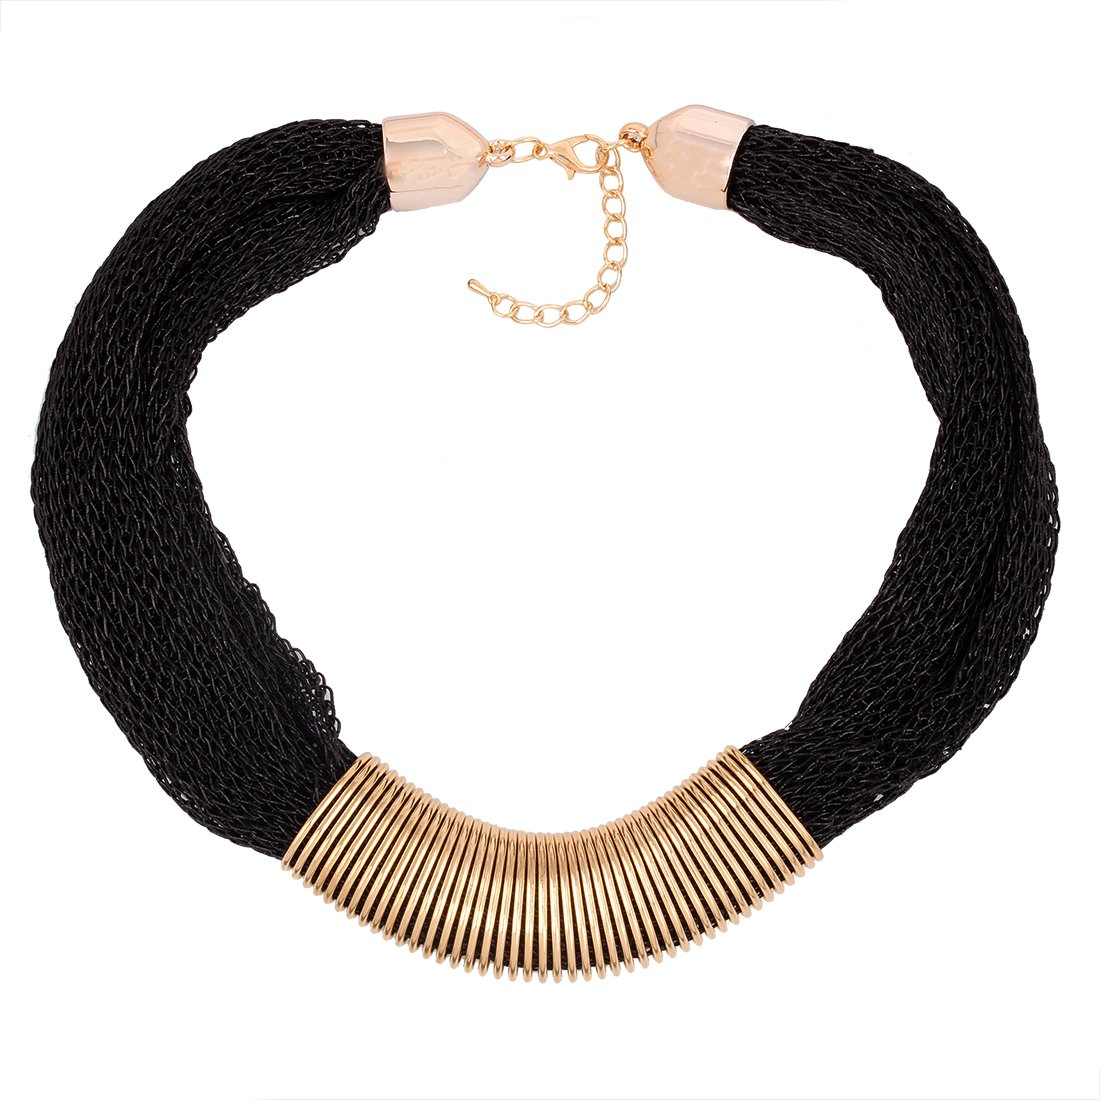 Qiyun Winter Mesh Web Link Chains Bold Chunky Tibet Bib Choker Necklace Maille Hiver Web Liens Tibet Collier W005N2171